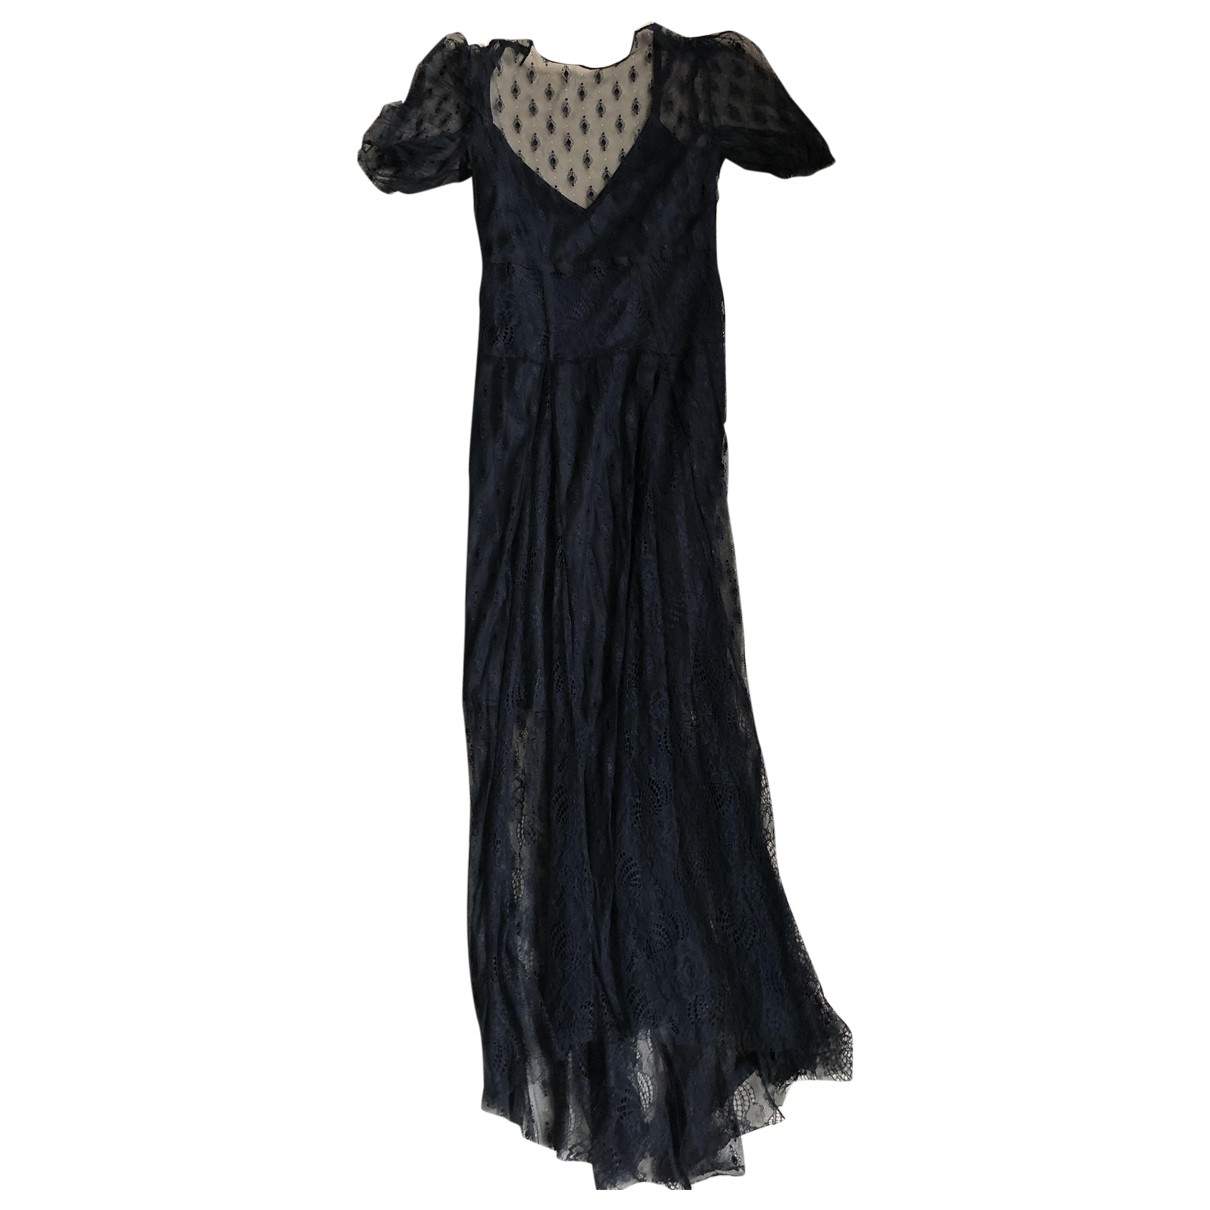 Maje \N Black Lace dress for Women 1 0-5